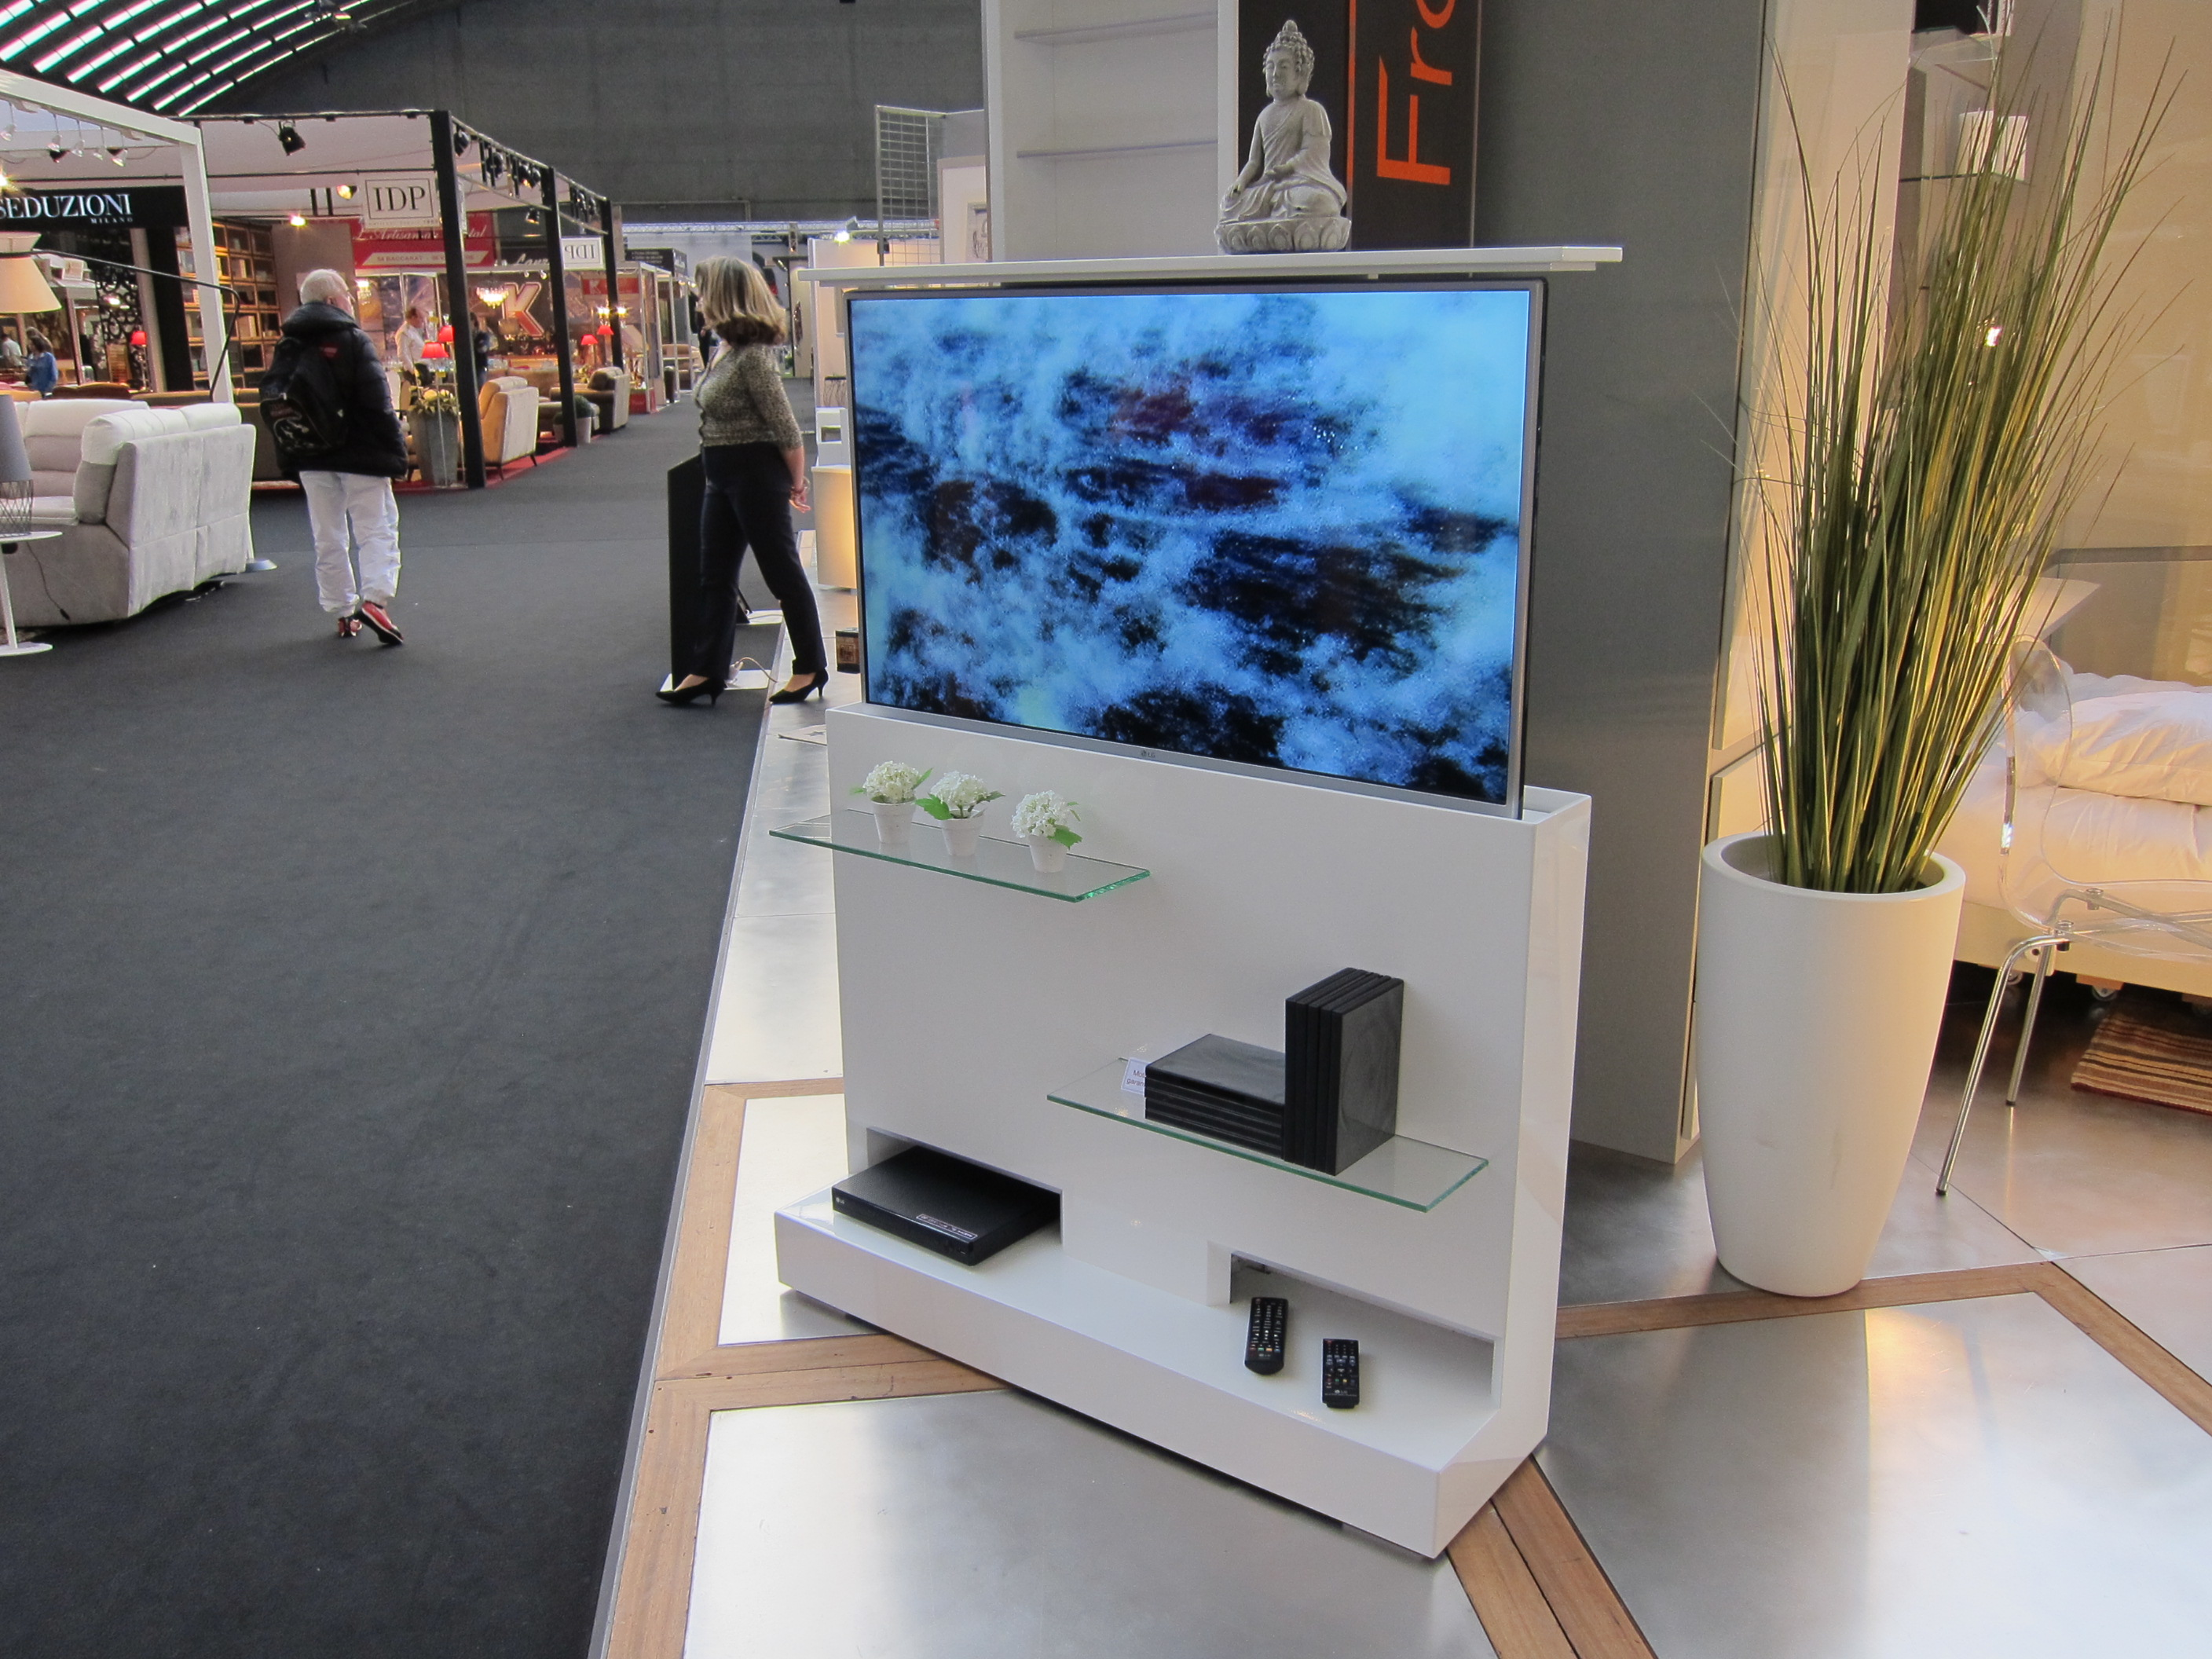 Meuble Tv Encastrable - Le Mobilier Gain De Place Fran Ois Desile[mjhdah]https://www.cobra.fr/media/catalog/product/m/2/m2p2n1gl_3.png